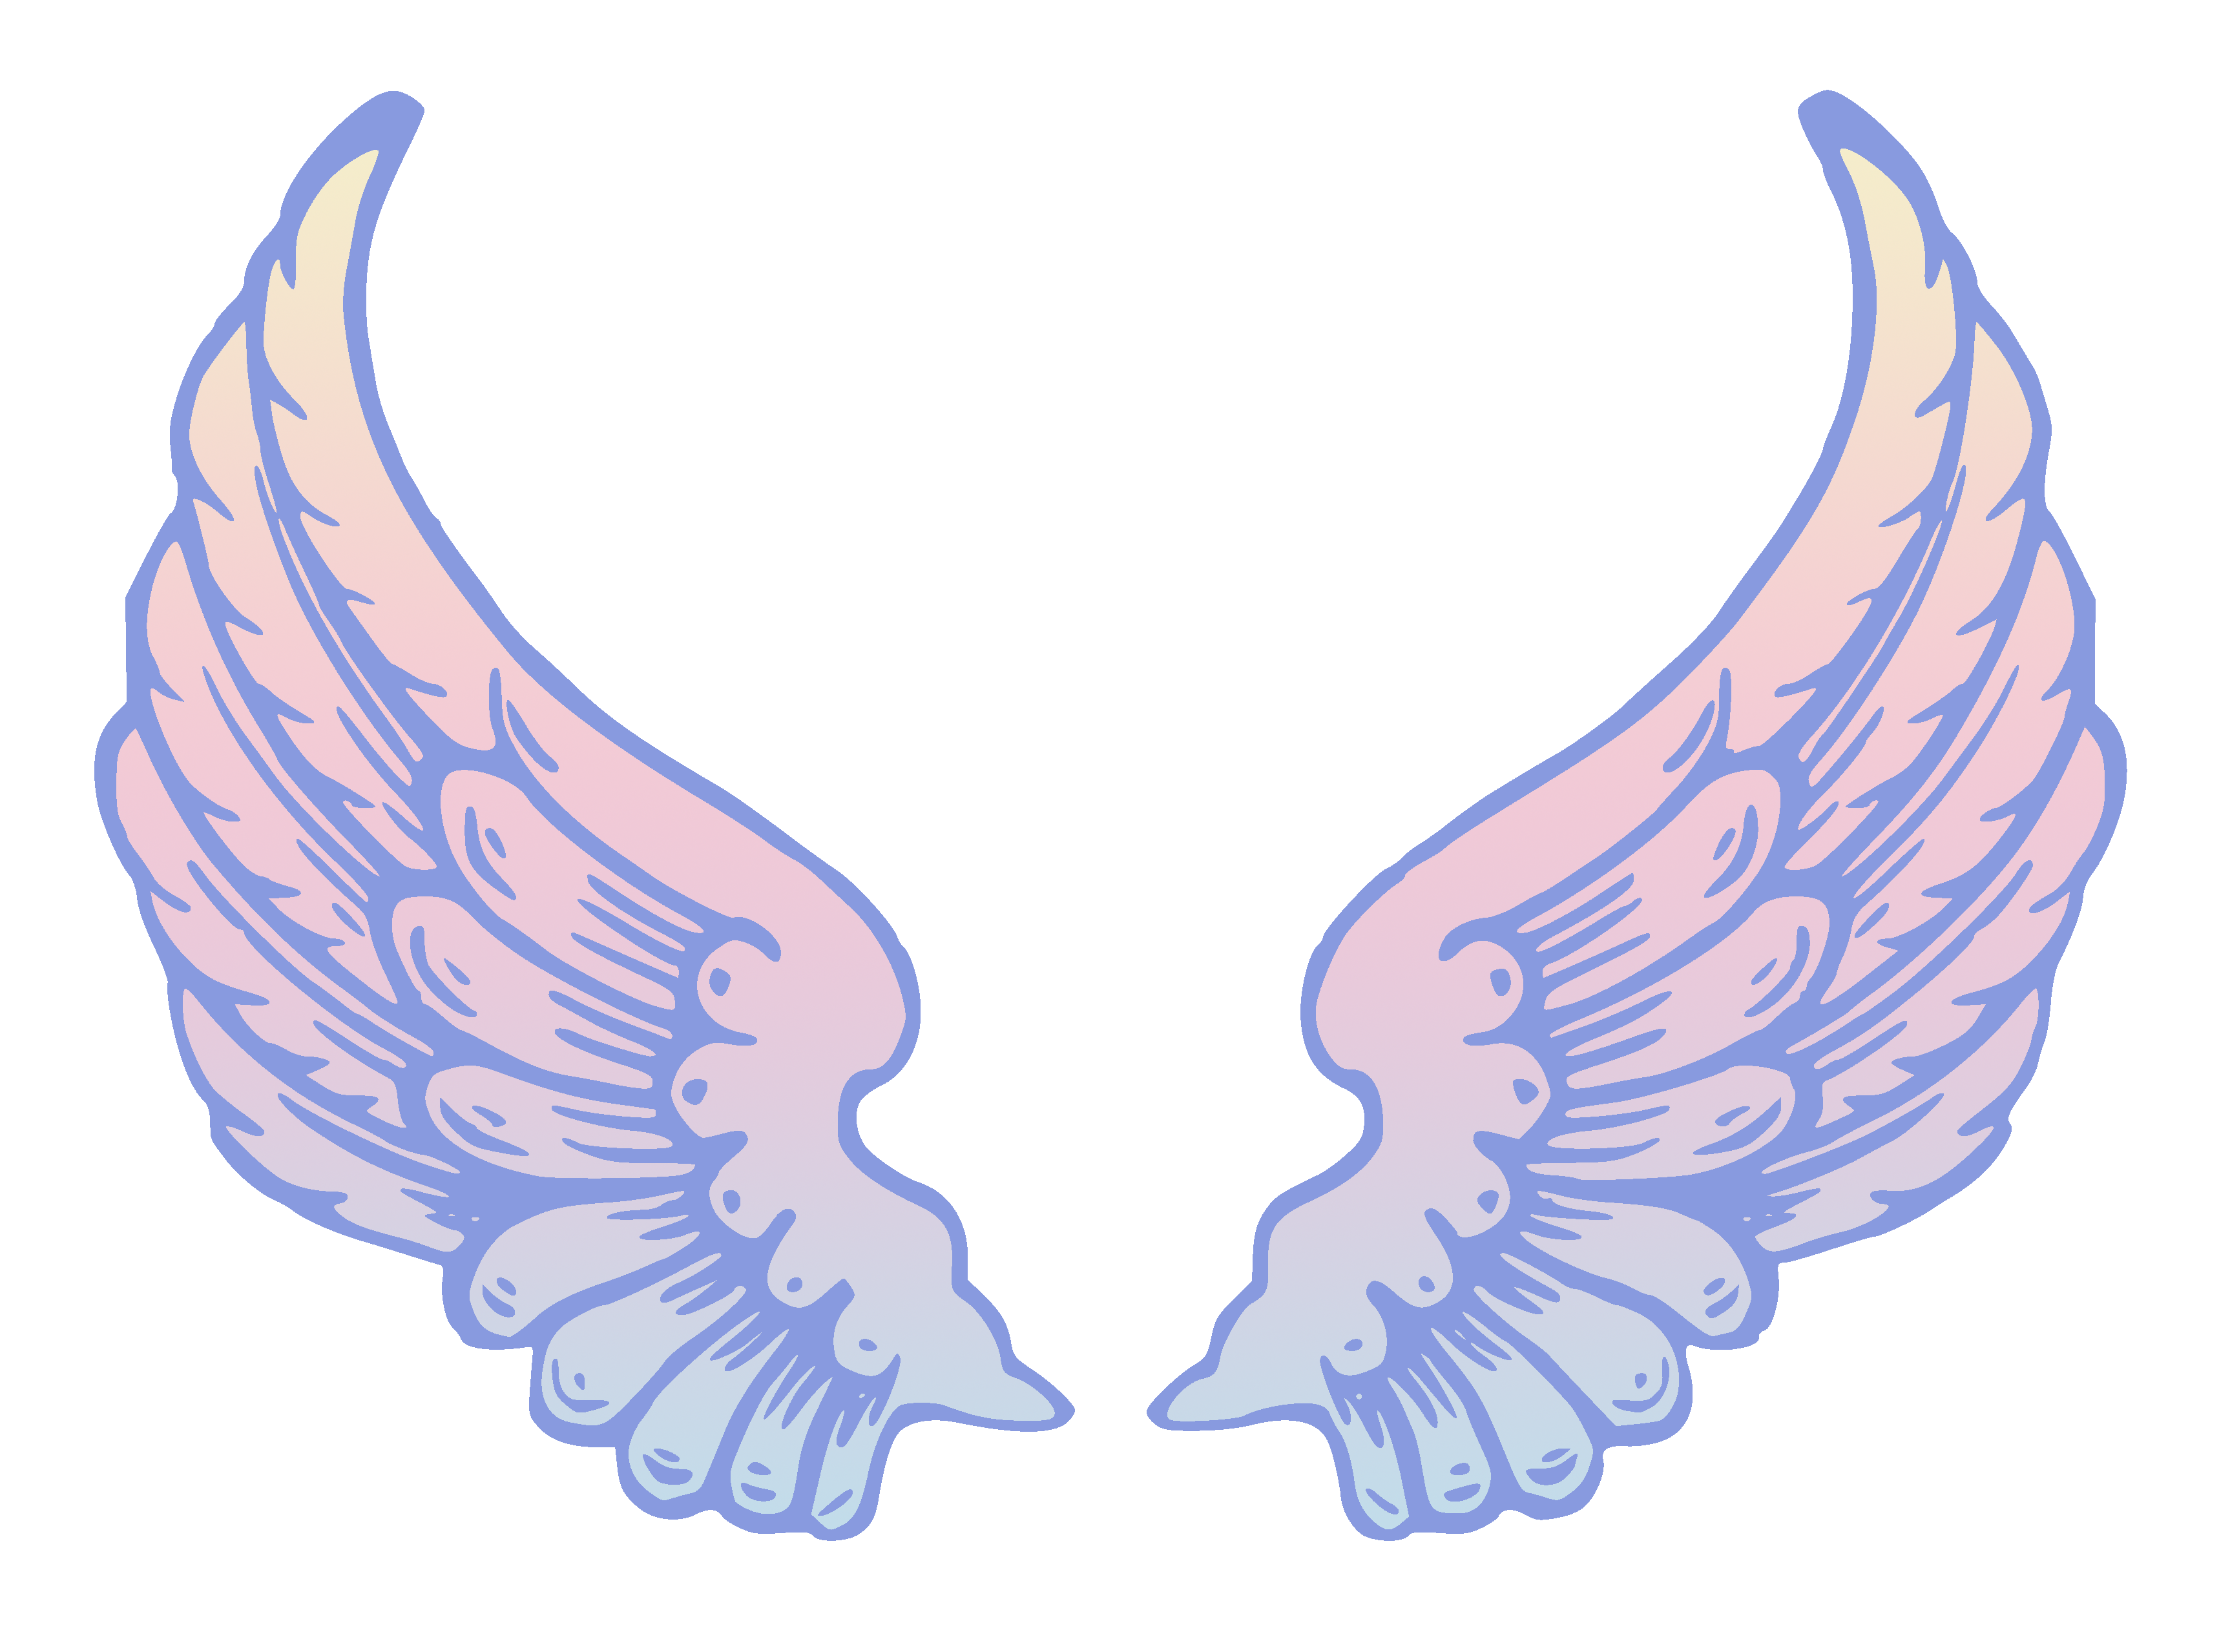 Baby wings clipart images clipart transparent download Free Baby Angel Wings Silhouette, Download Free Clip Art, Free Clip ... clipart transparent download